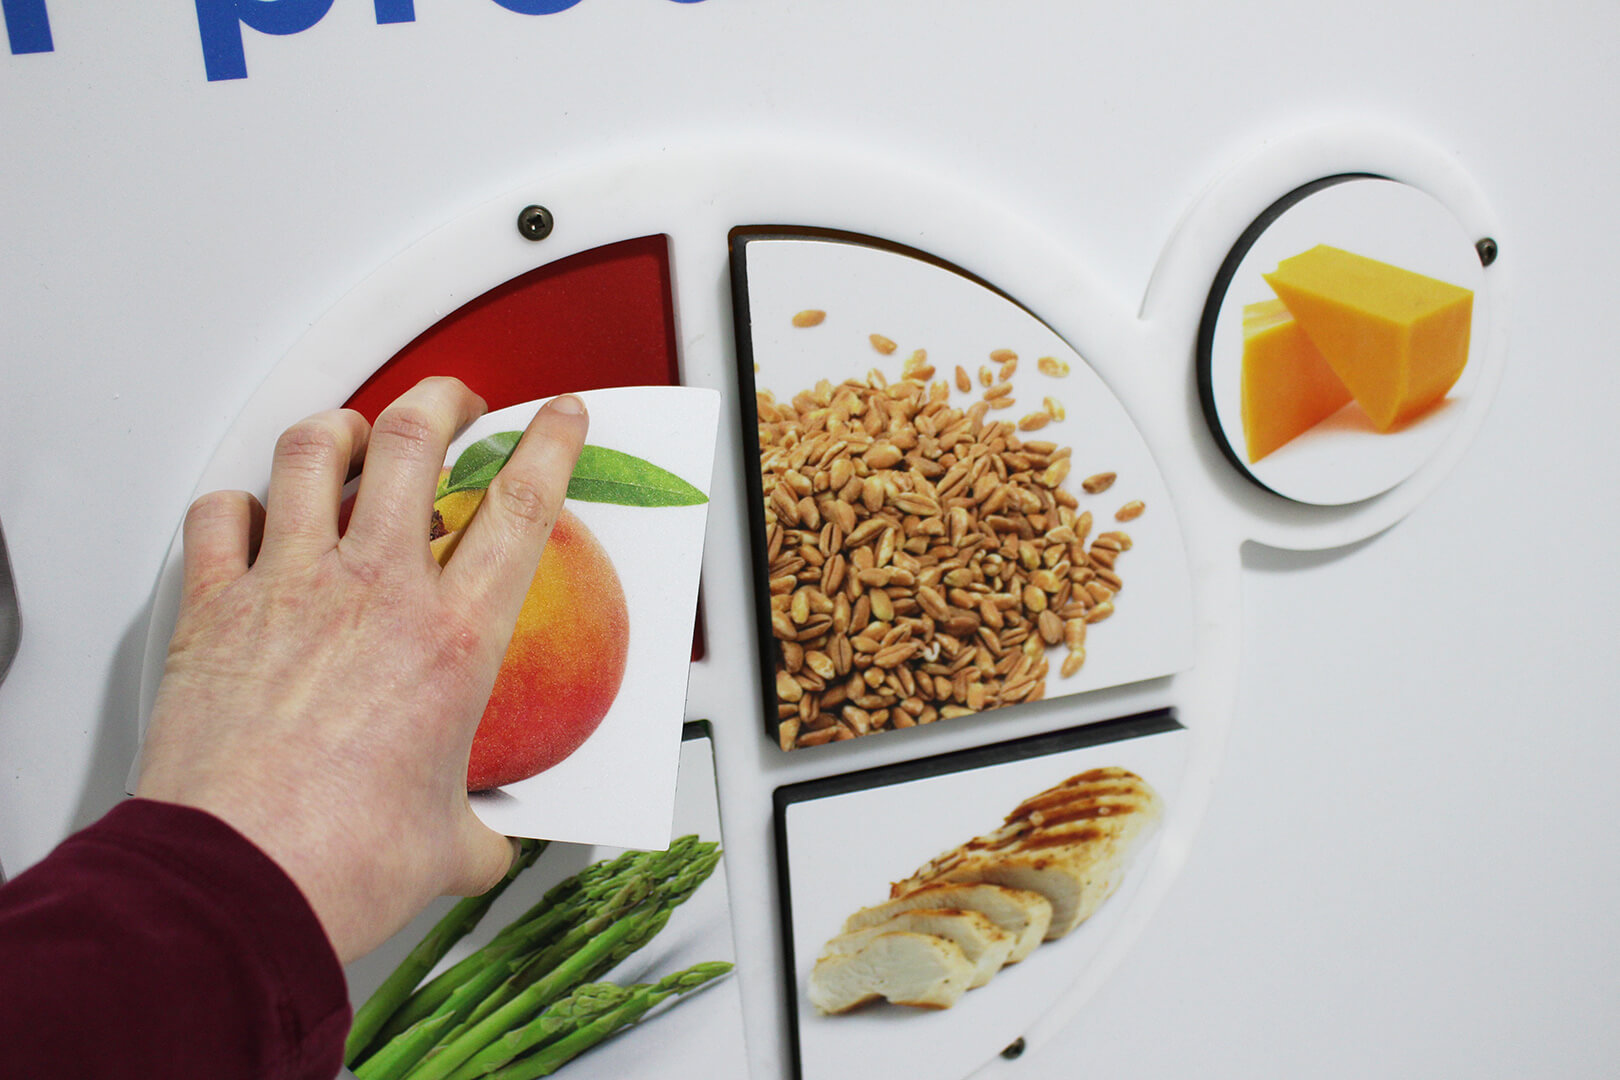 Hand adding a piece to the plate on the interactive food choices display